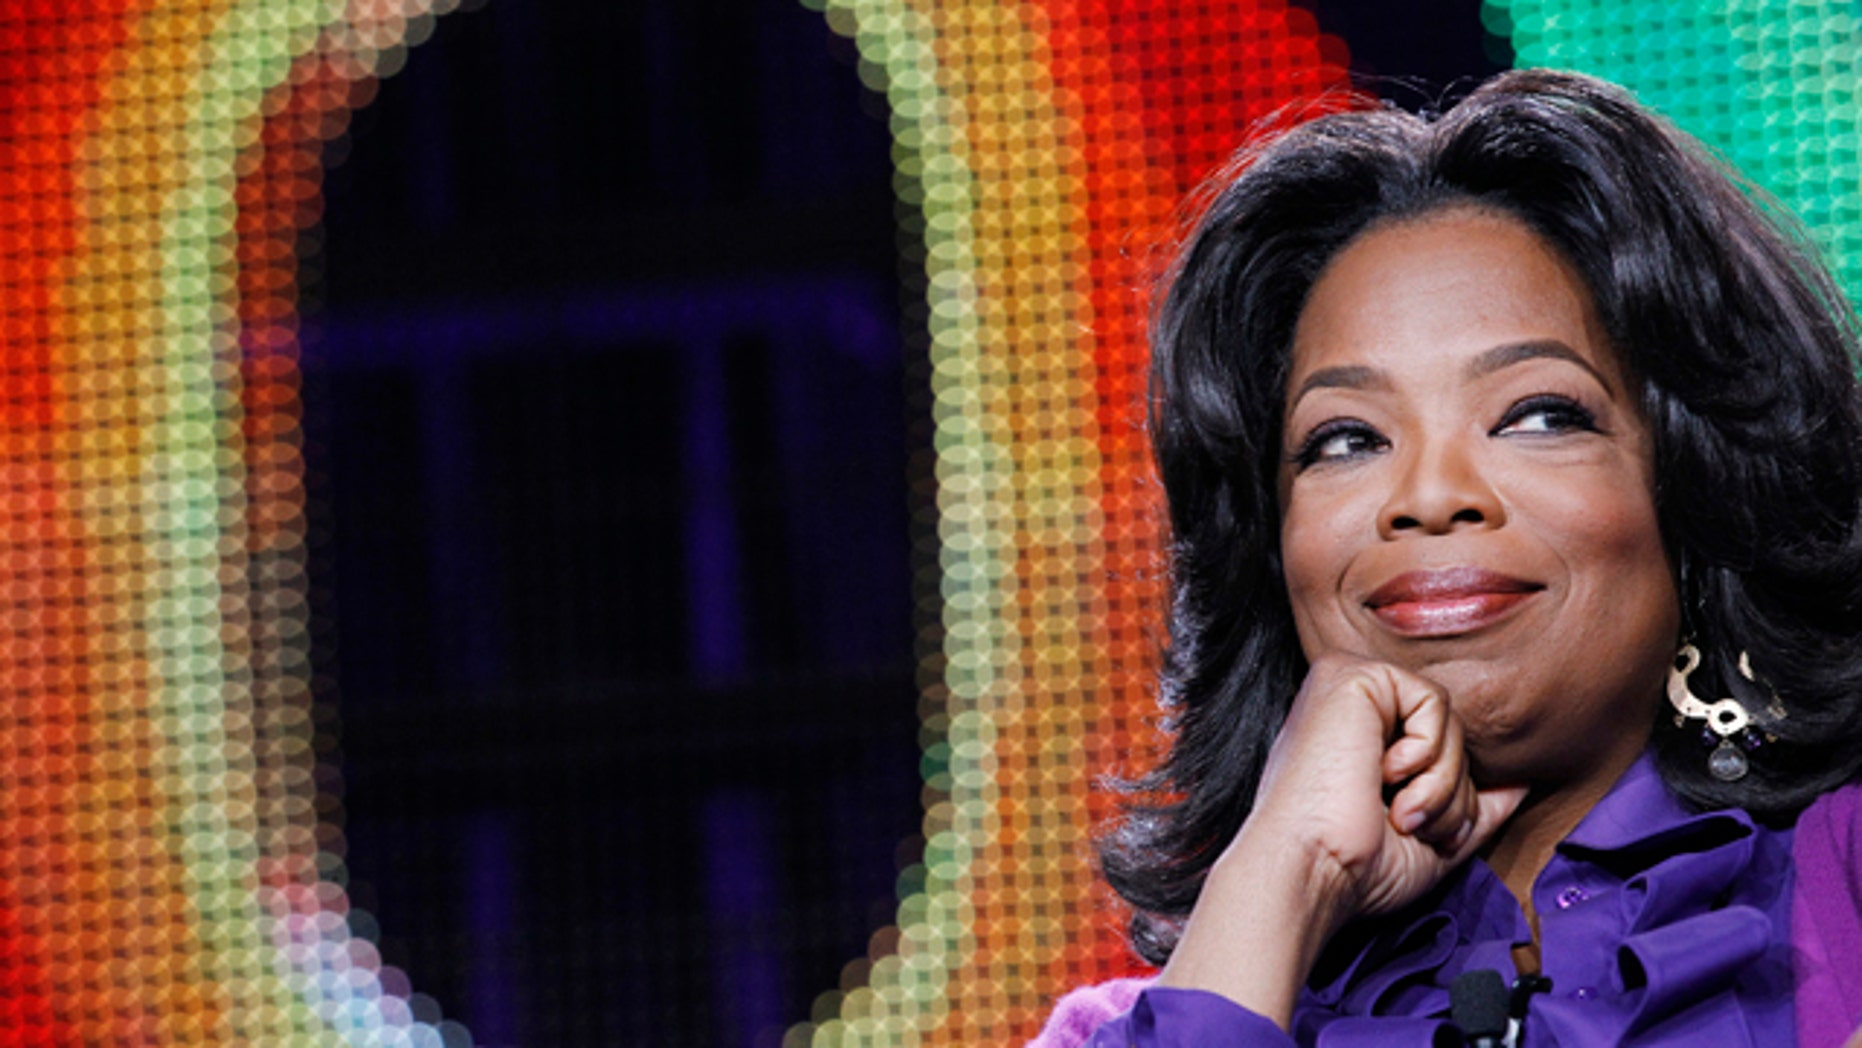 Oprah Winfrey attends a panel during the Oprah Winfrey Network (OWN) Television Critics Association winter press tour in Pasadena, California January 6, 2011.  REUTERS/Mario Anzuoni (UNITED STATES - Tags: ENTERTAINMENT)